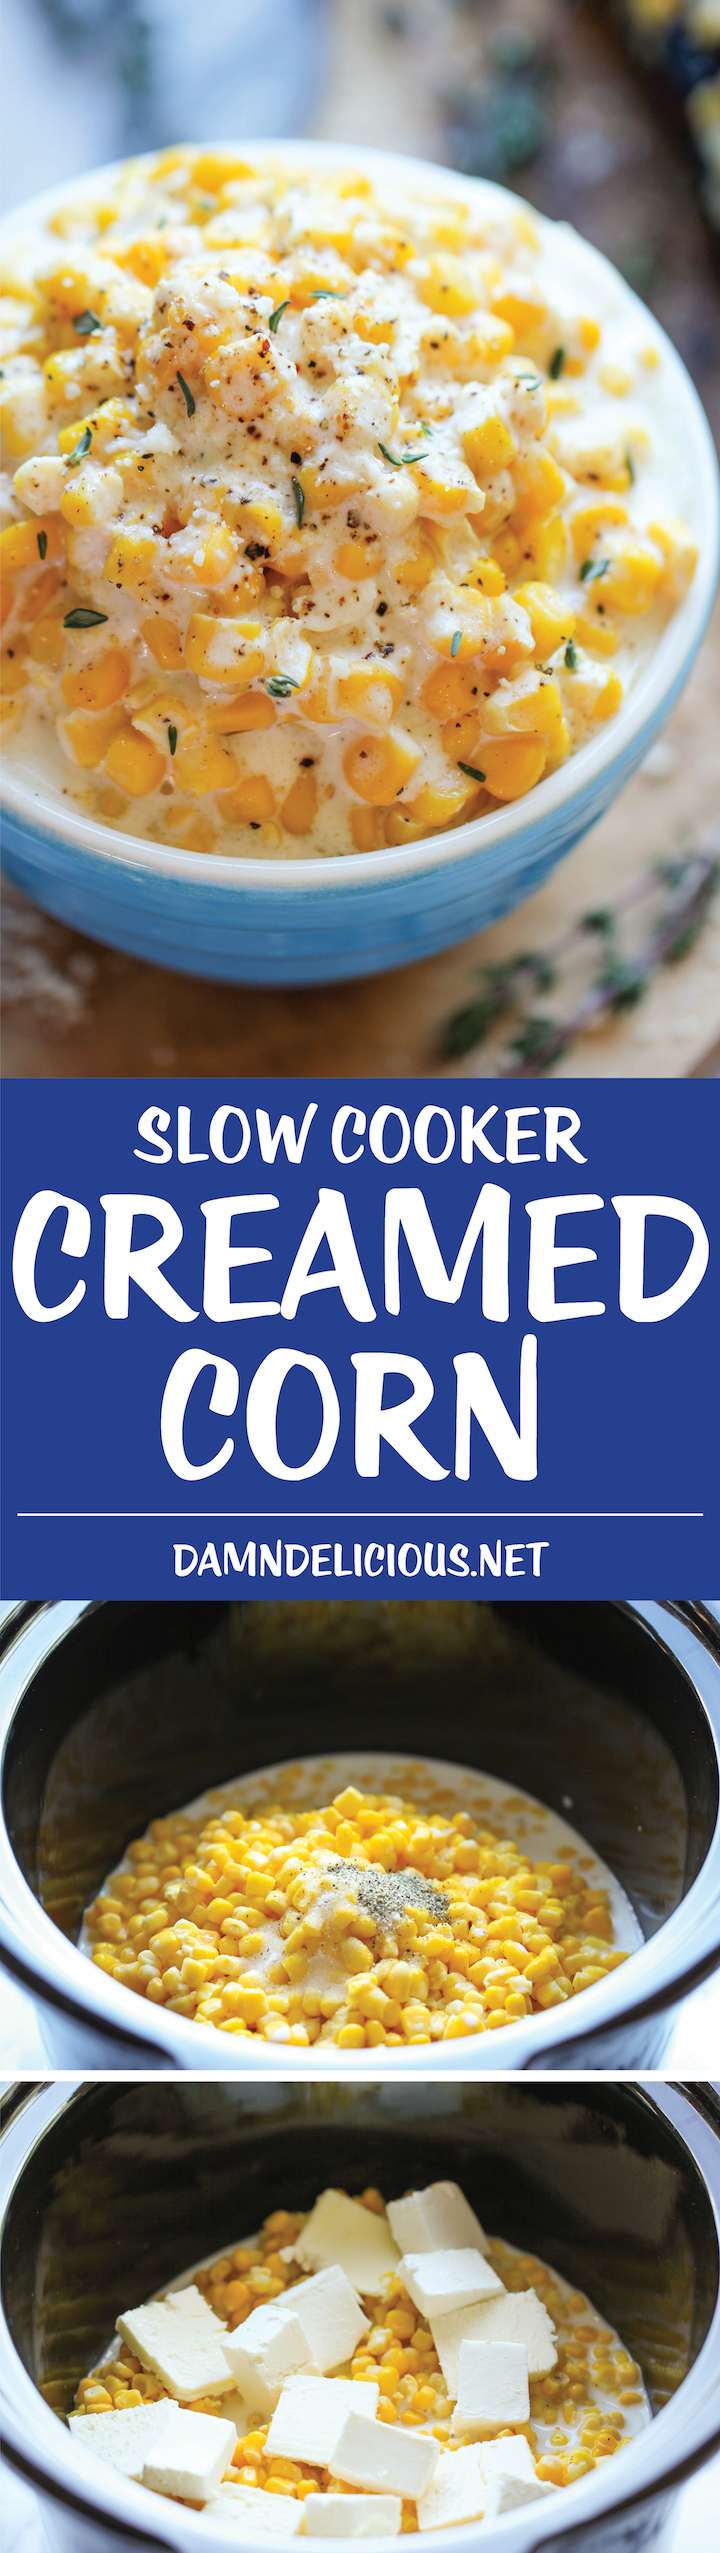 Slow Cooker Creamed Corn | Easy Slow Cooker Recipes For Thanksgiving | slow cooker recipes for thanksgiving | thanksgiving recipes